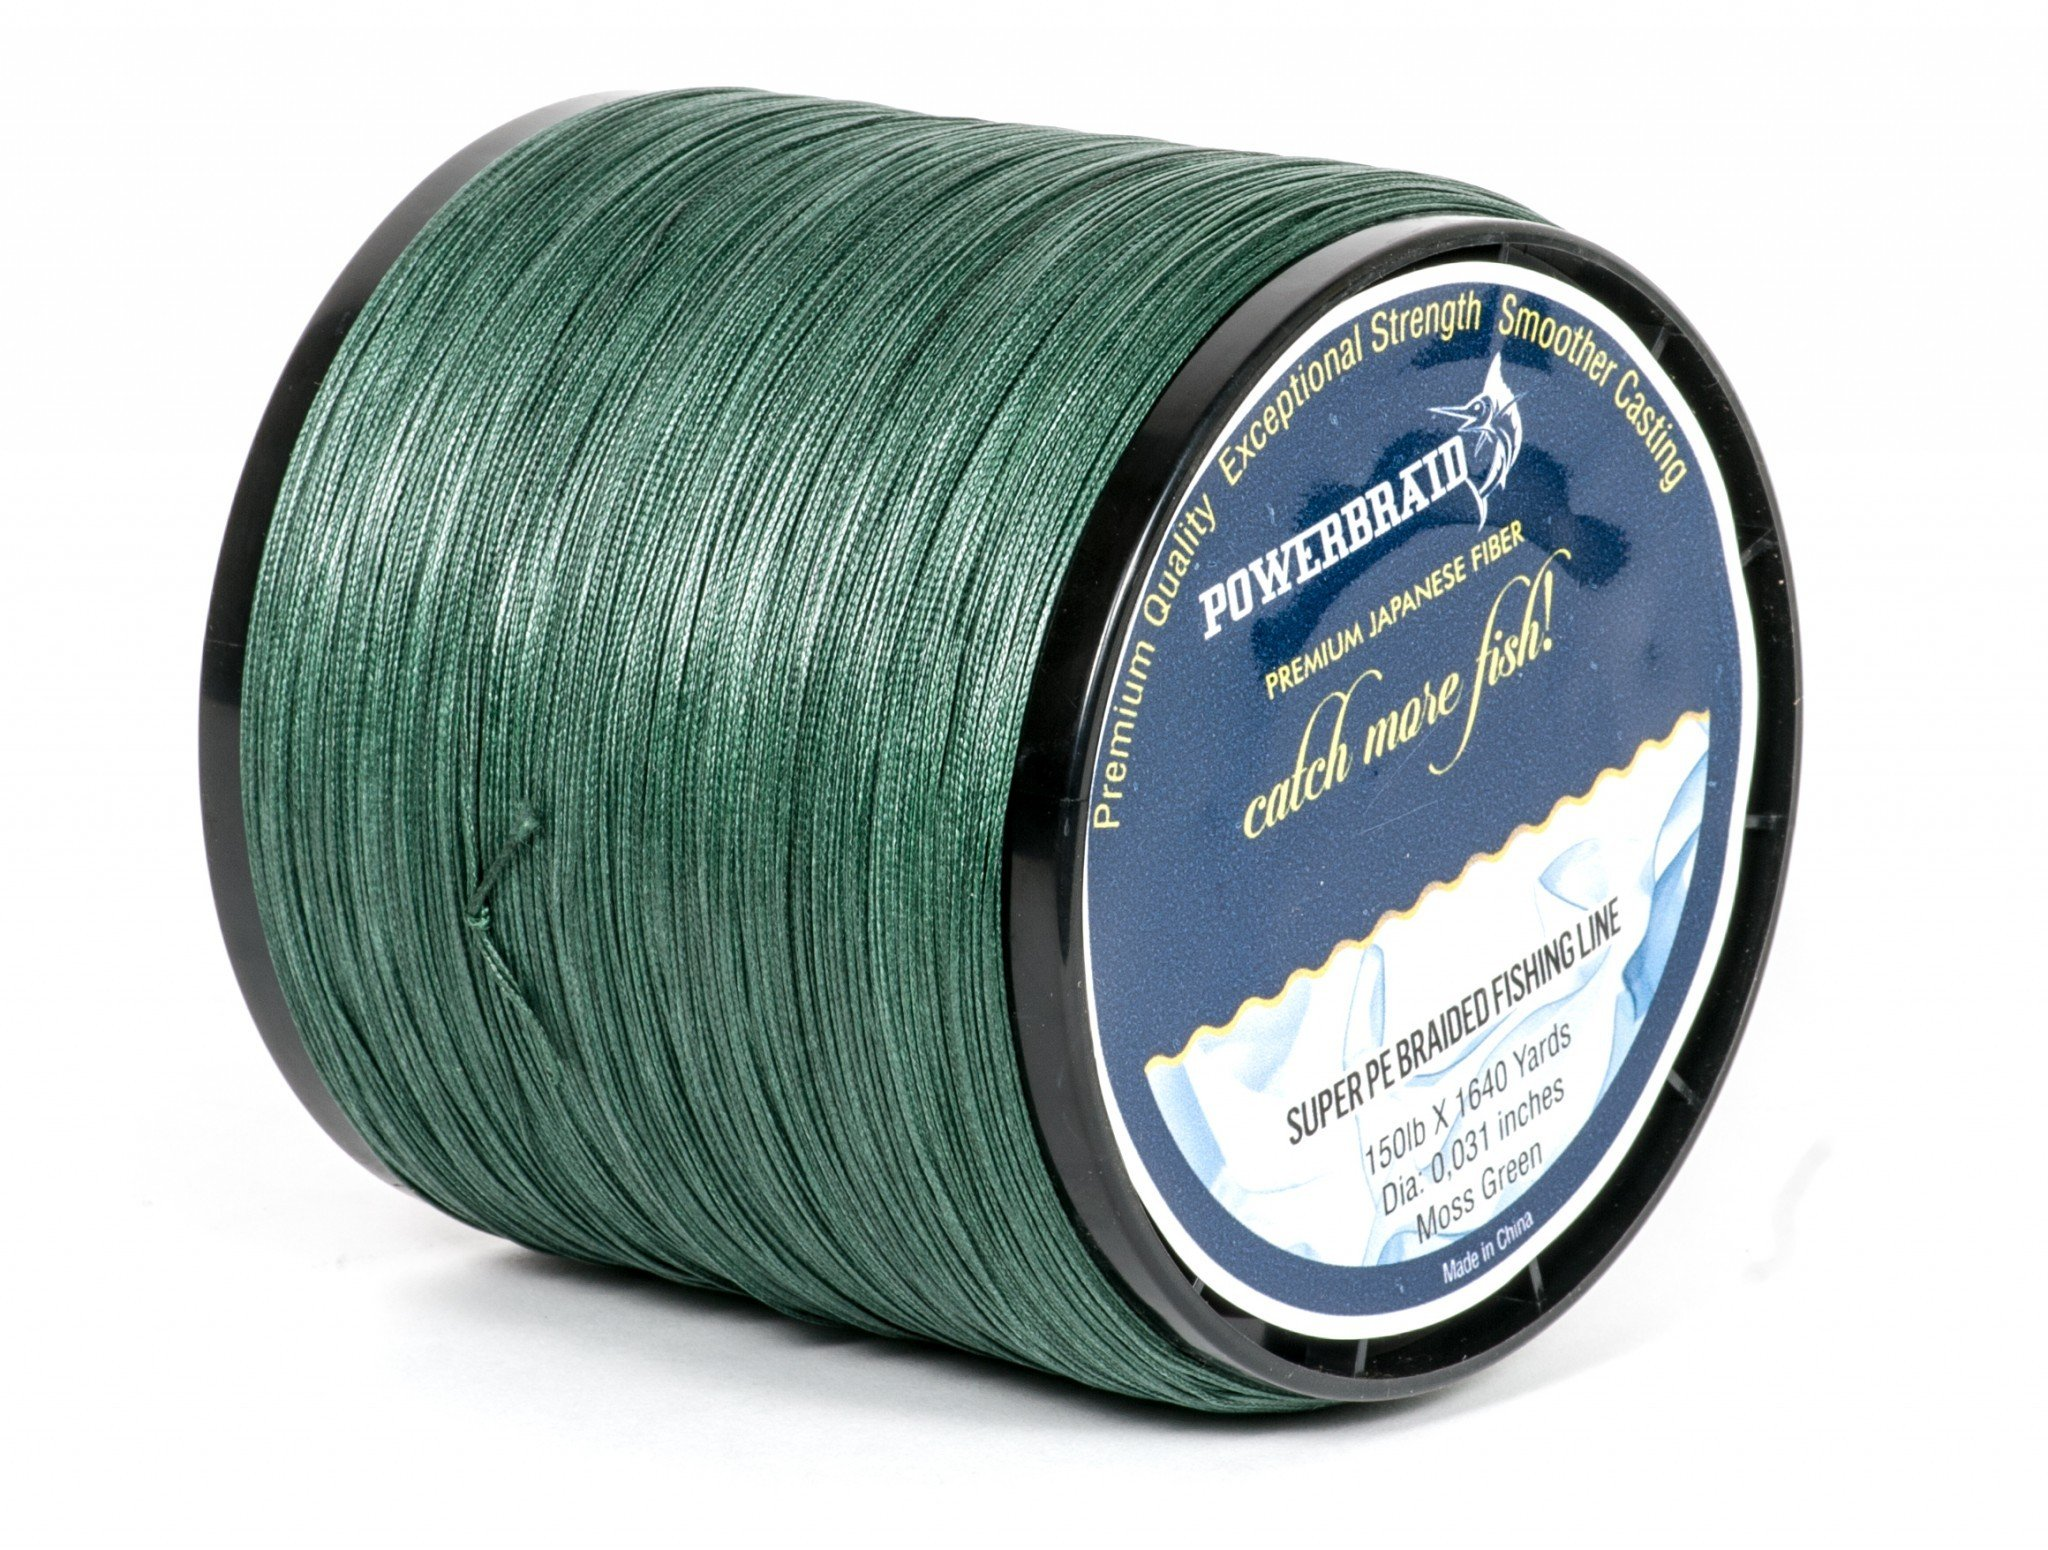 POWERBRAID Premium Quality Braided Fishing Line 150 lb Moss Green with 1640 Yards by POWERBRAID